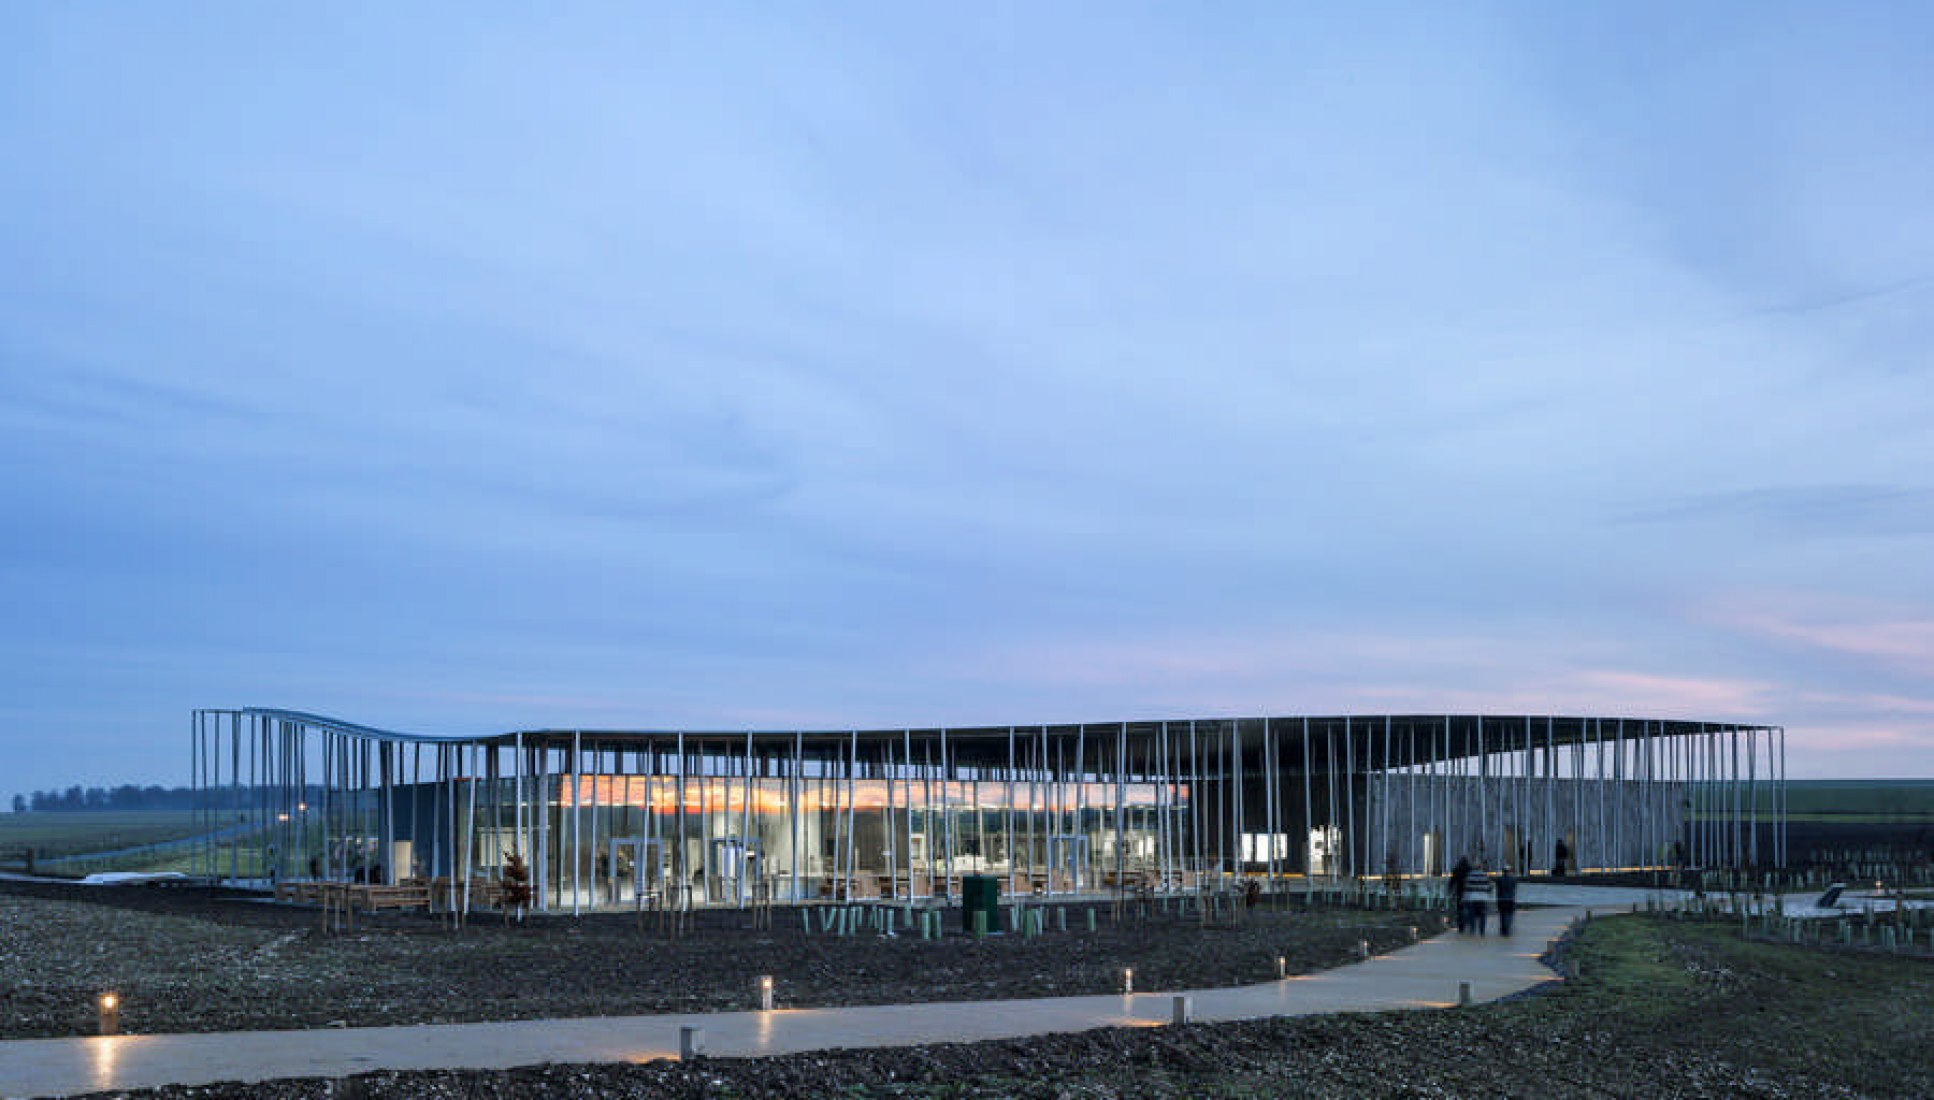 New Stonehenge Visitor Centre by Denton Corker Marshall. Photography © Peter Cook.